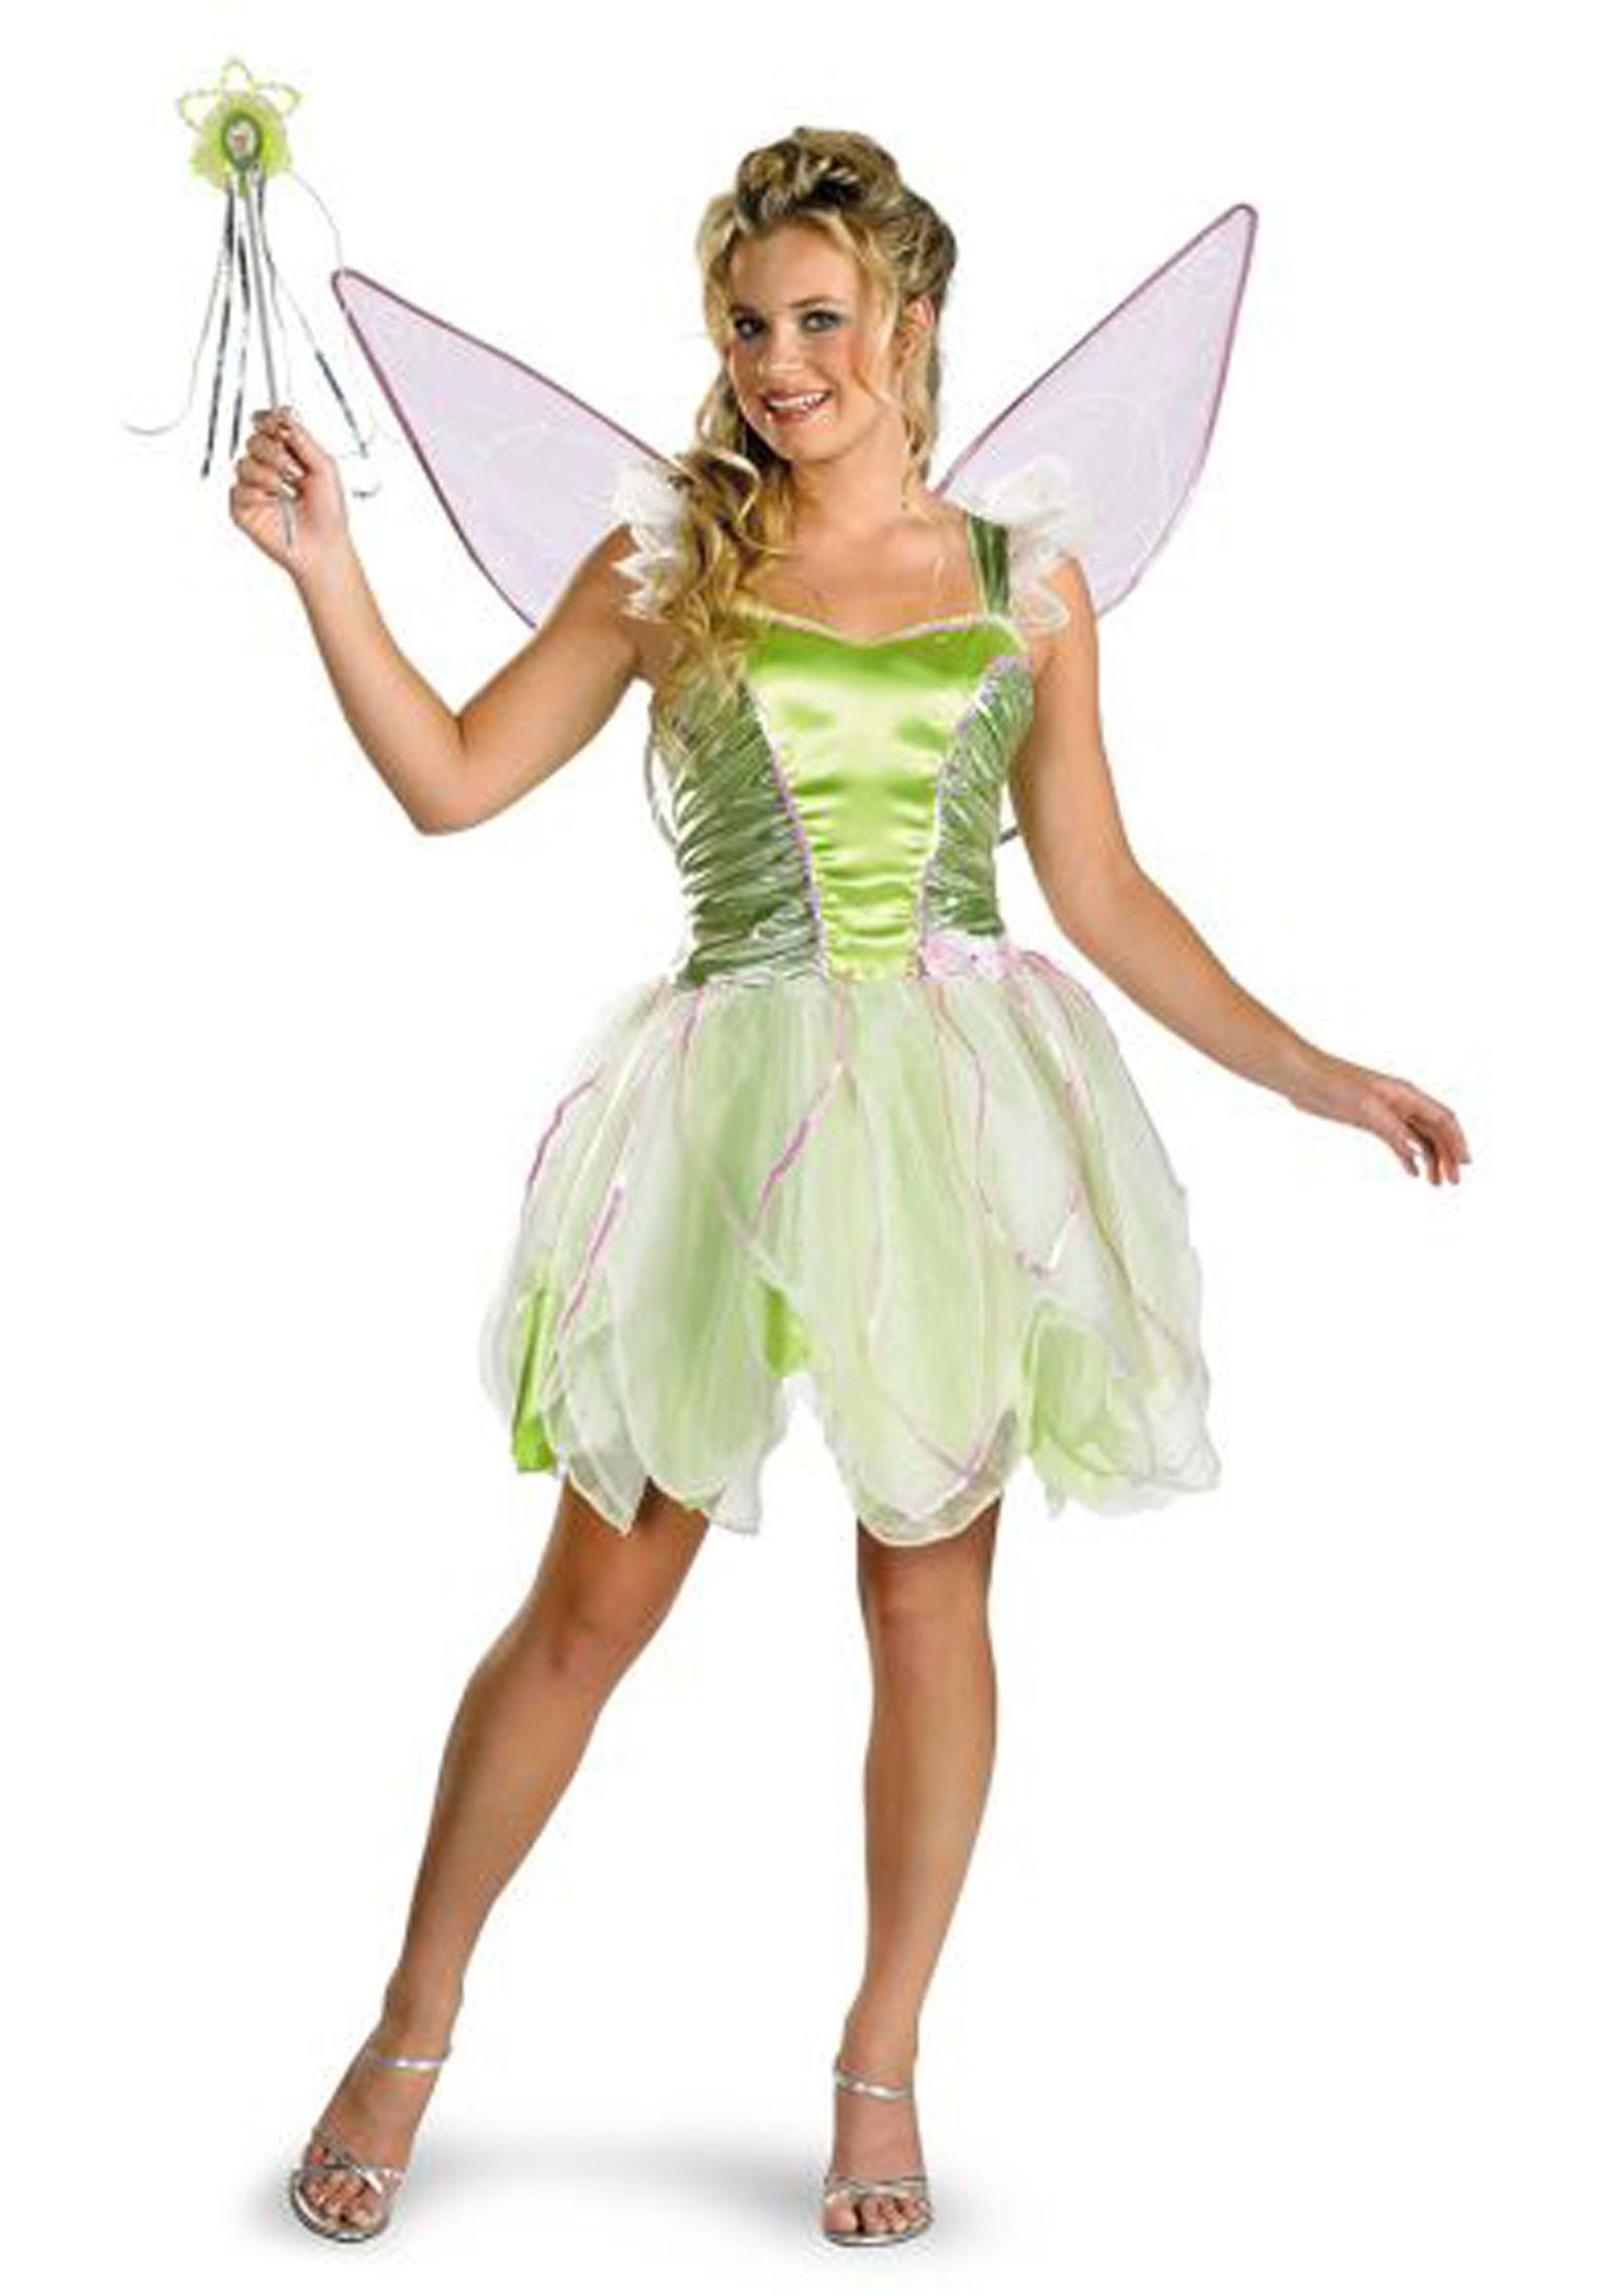 sex-tape-tinkerbell-costume-sex-porn-betts